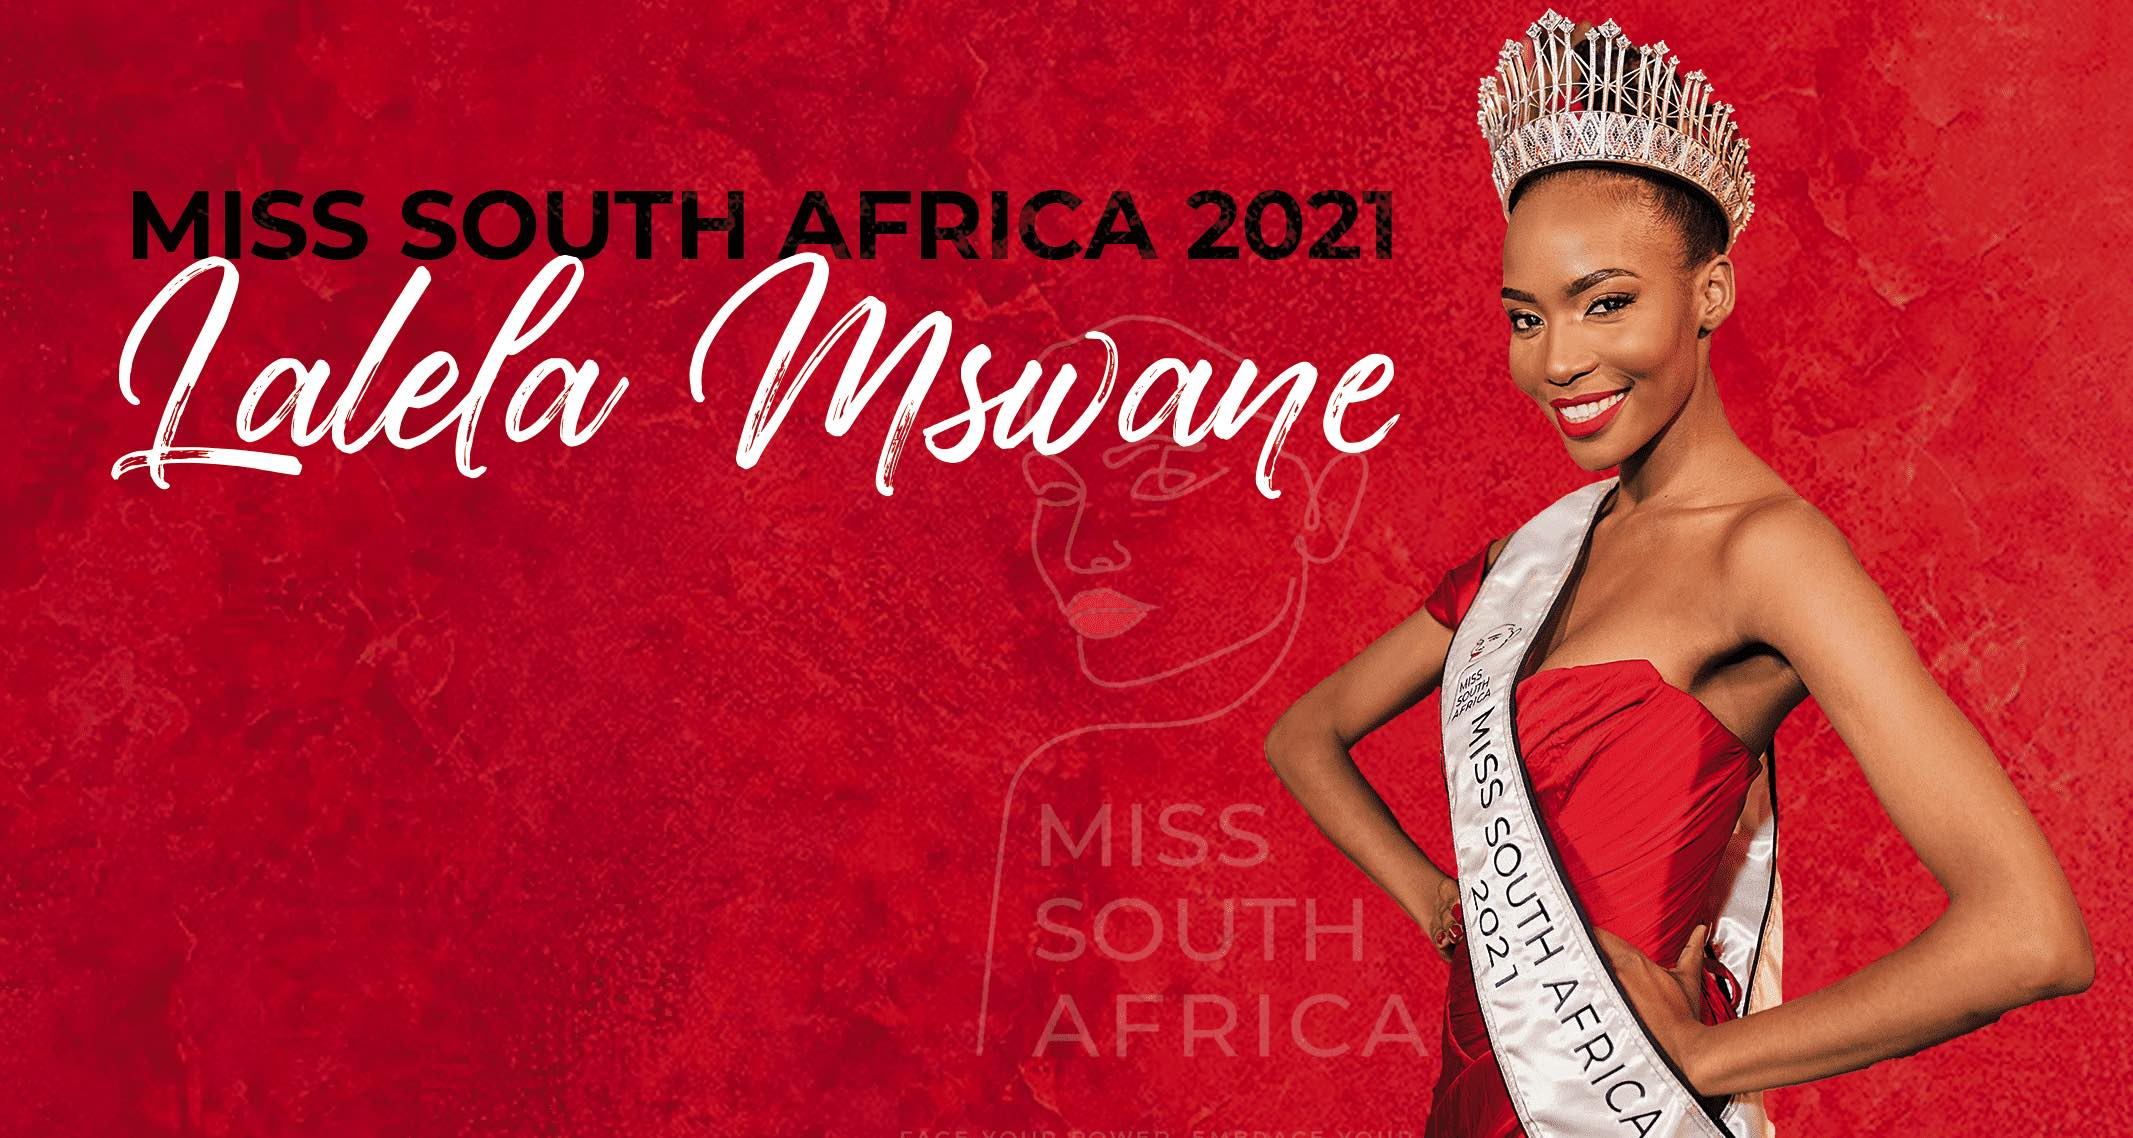 MISS SOUTH AFRICA 2021 TOP 30